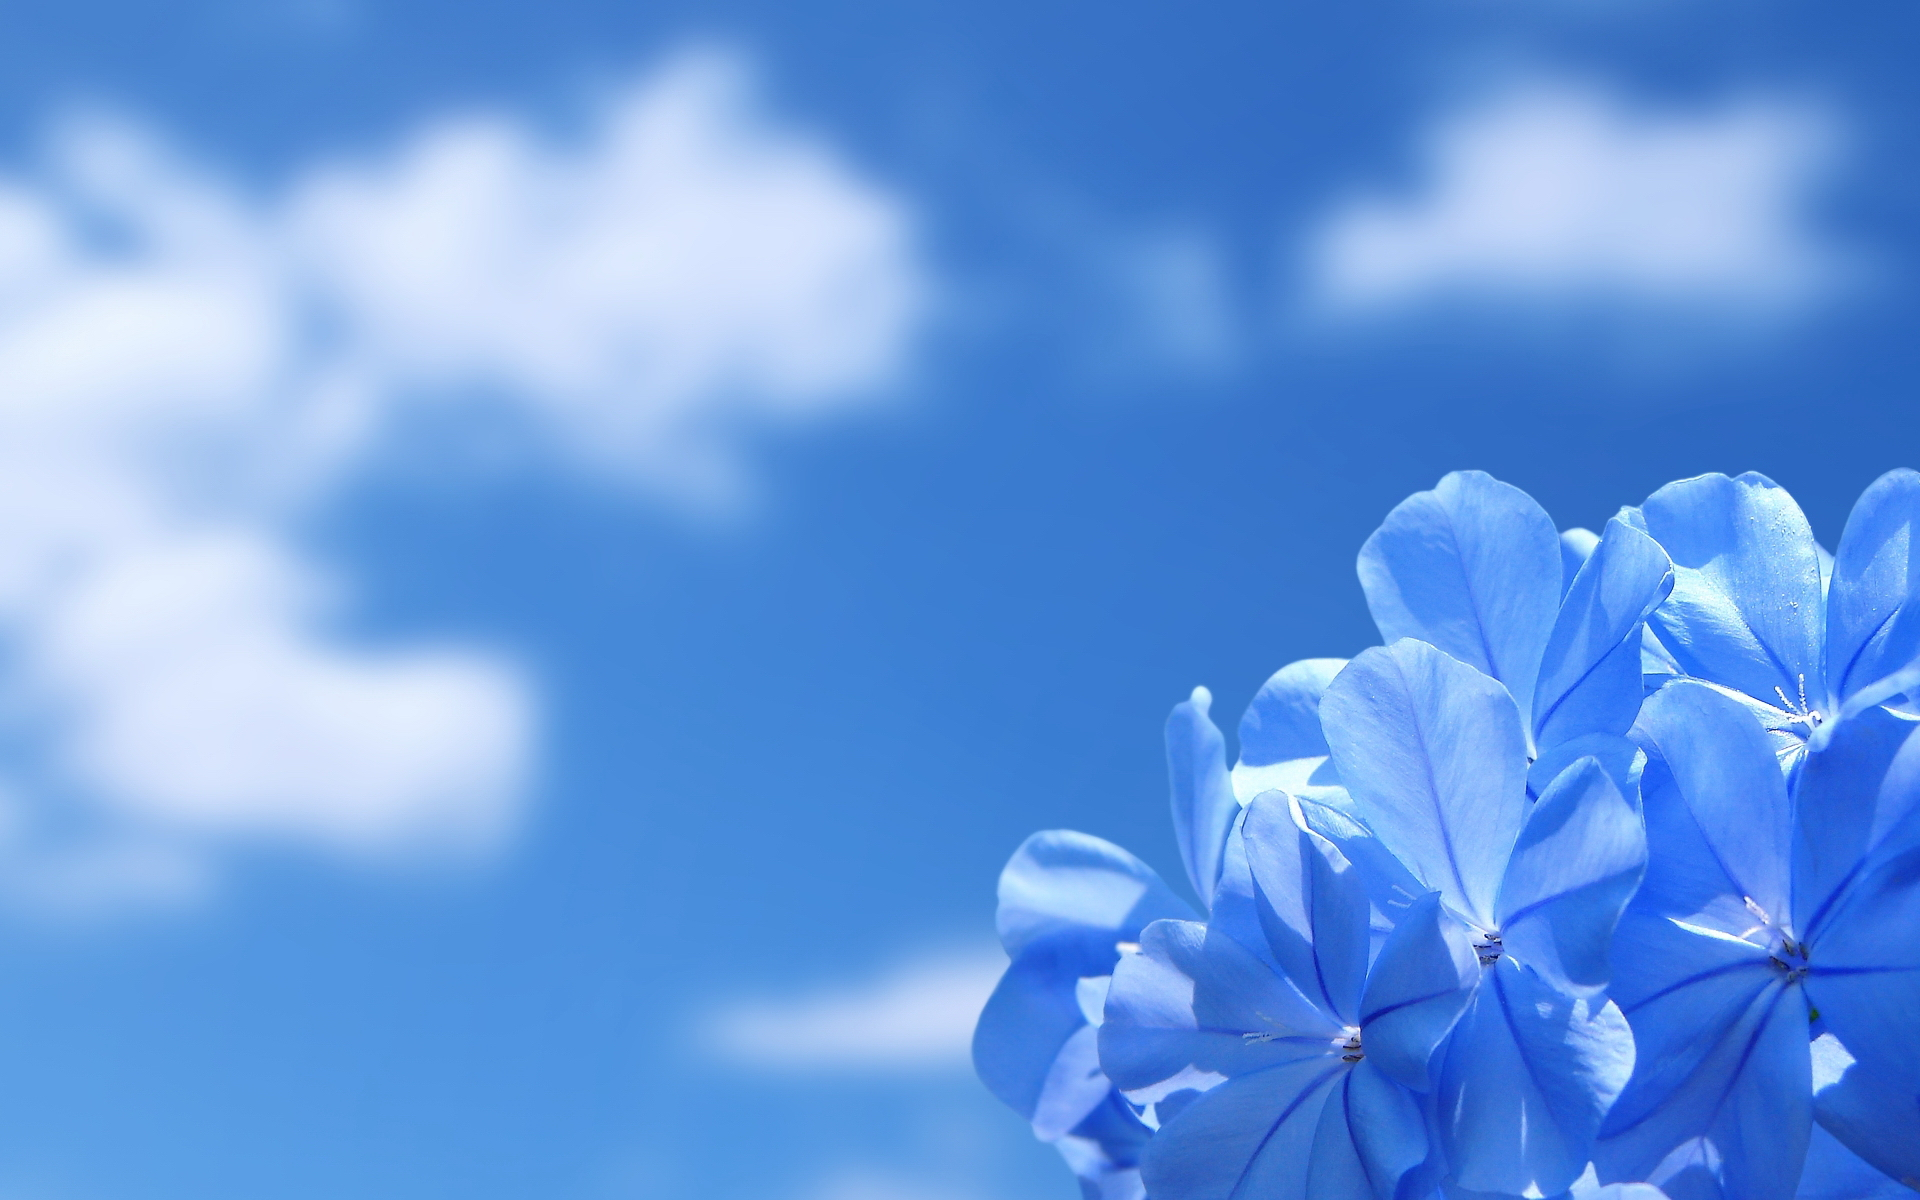 desktop backgrounds flowers blue wallpapers flower 1920x1200 1920x1200